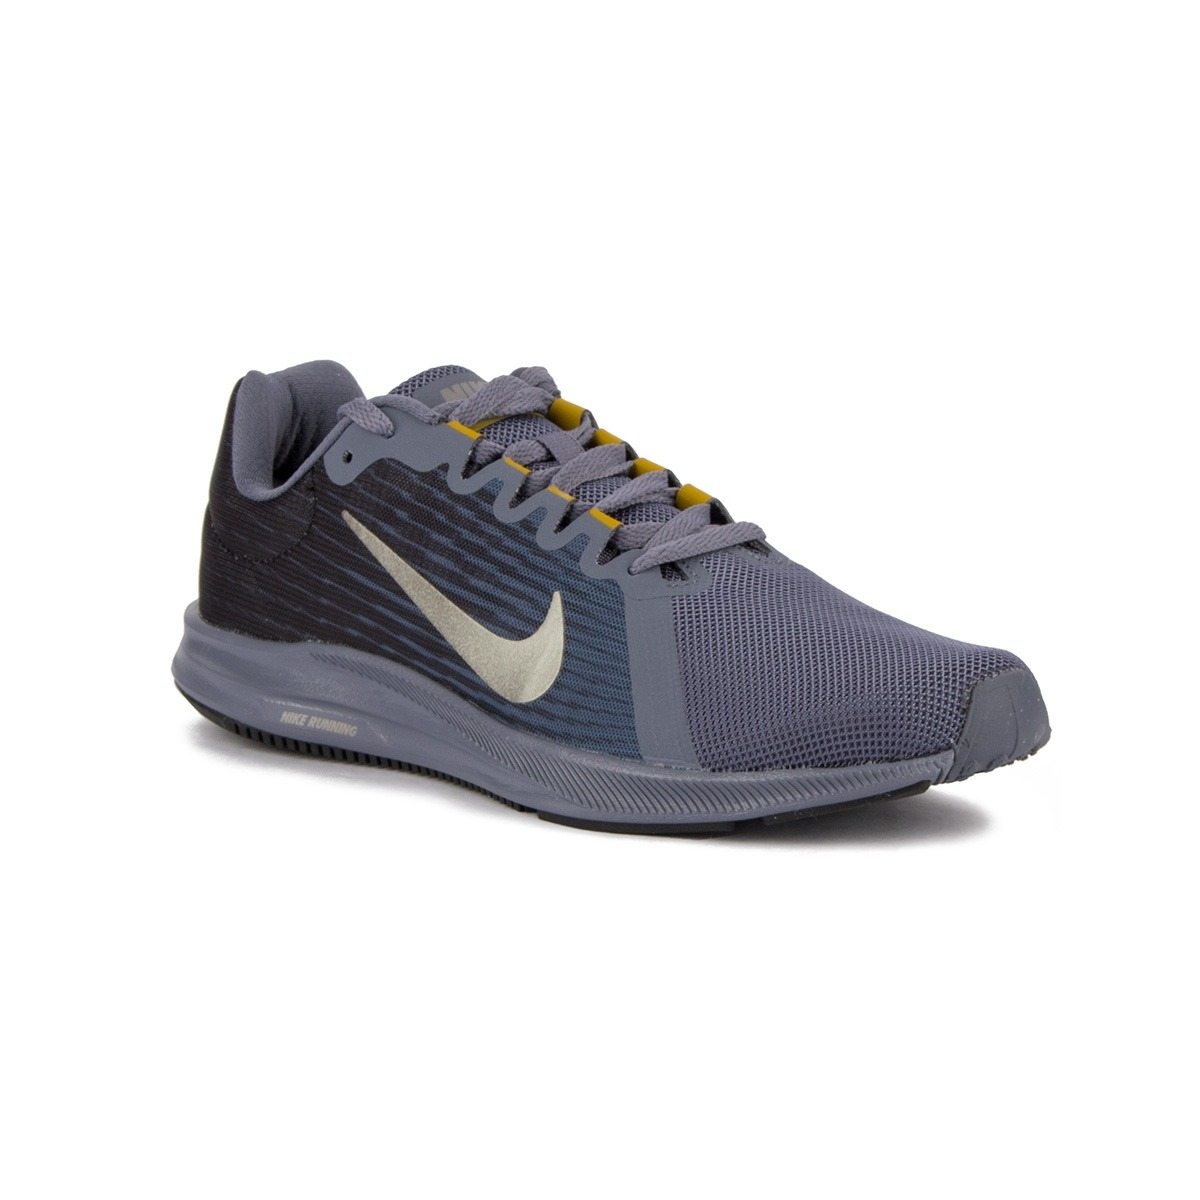 Nike Zapatillas Downshifter 8 Light Carbon Mtlc Pewter Hombre